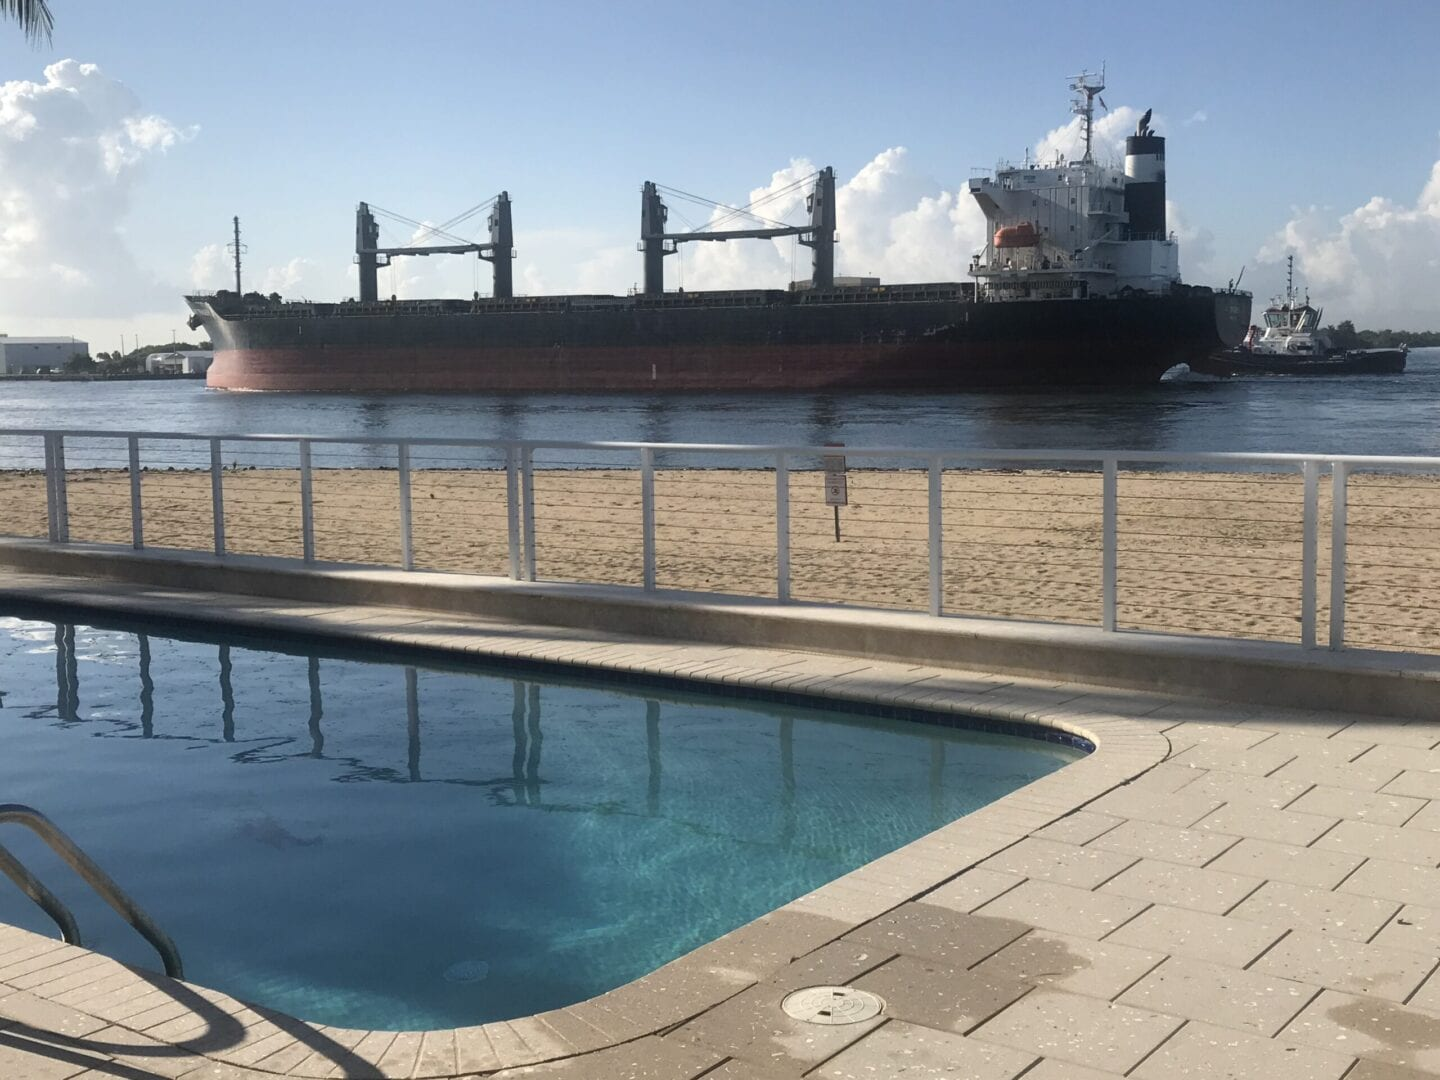 Rounded rectangle pool near the ocean and a big ship nearby